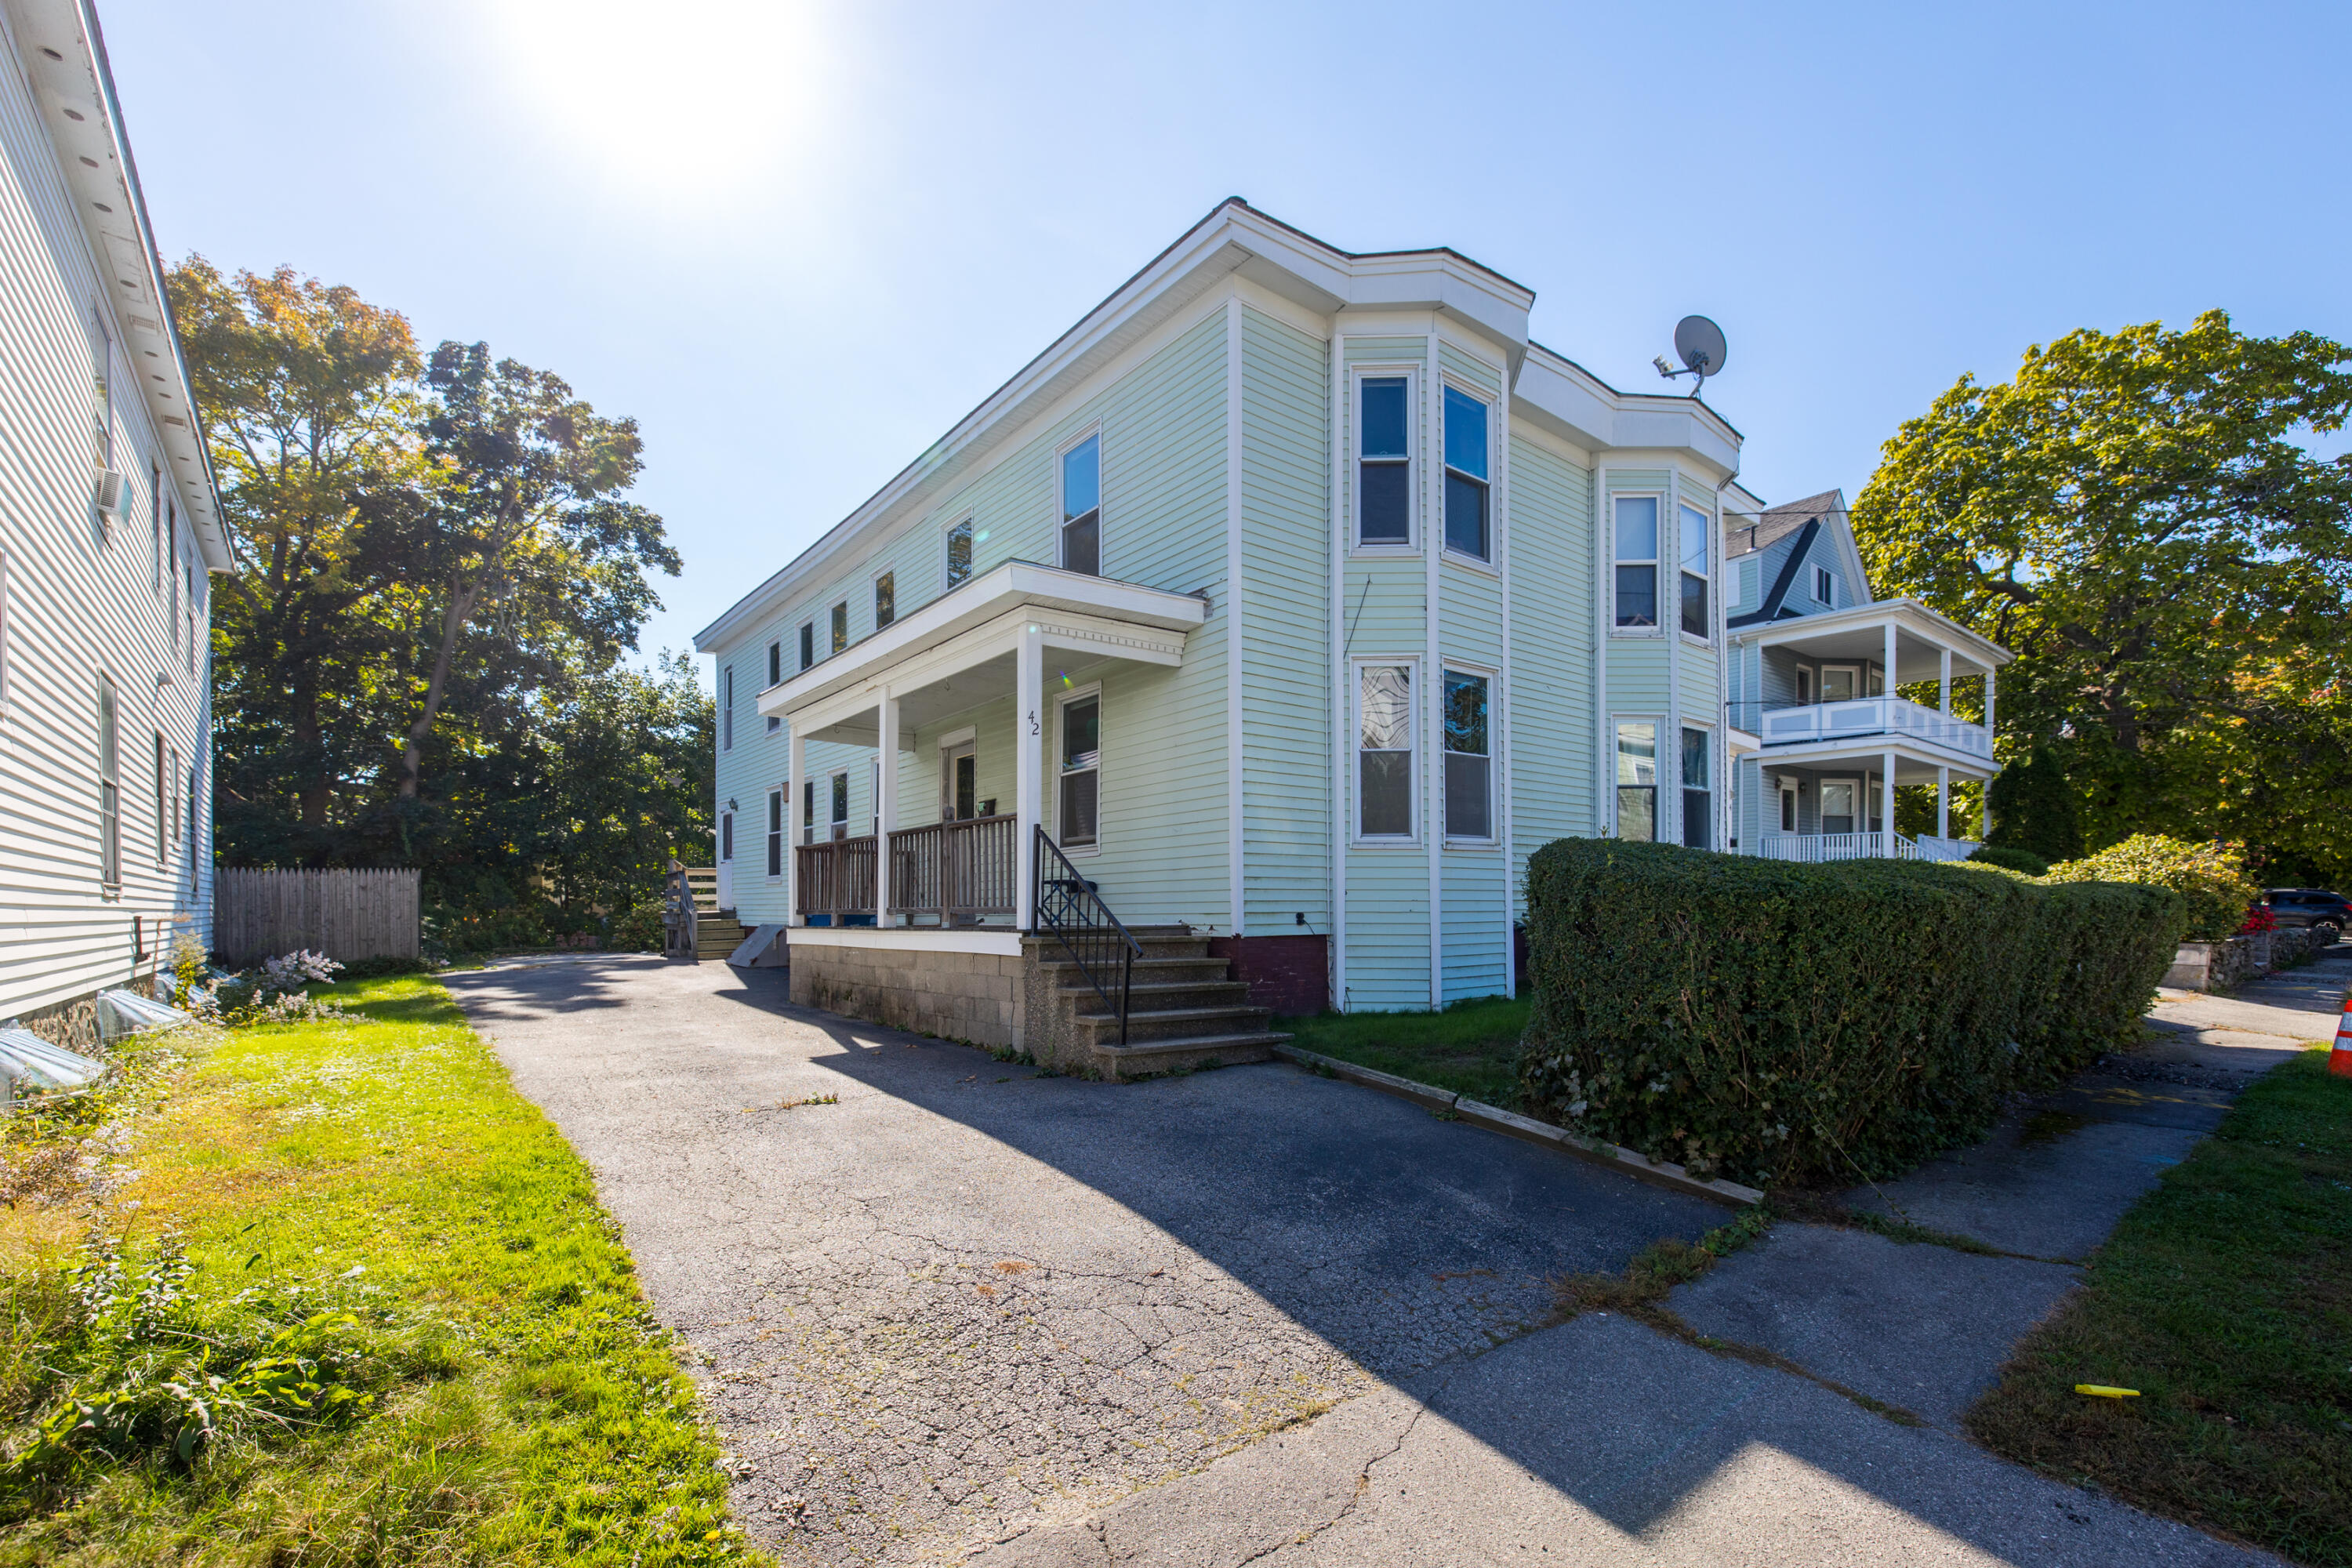 Main image for MLS listing 1511730